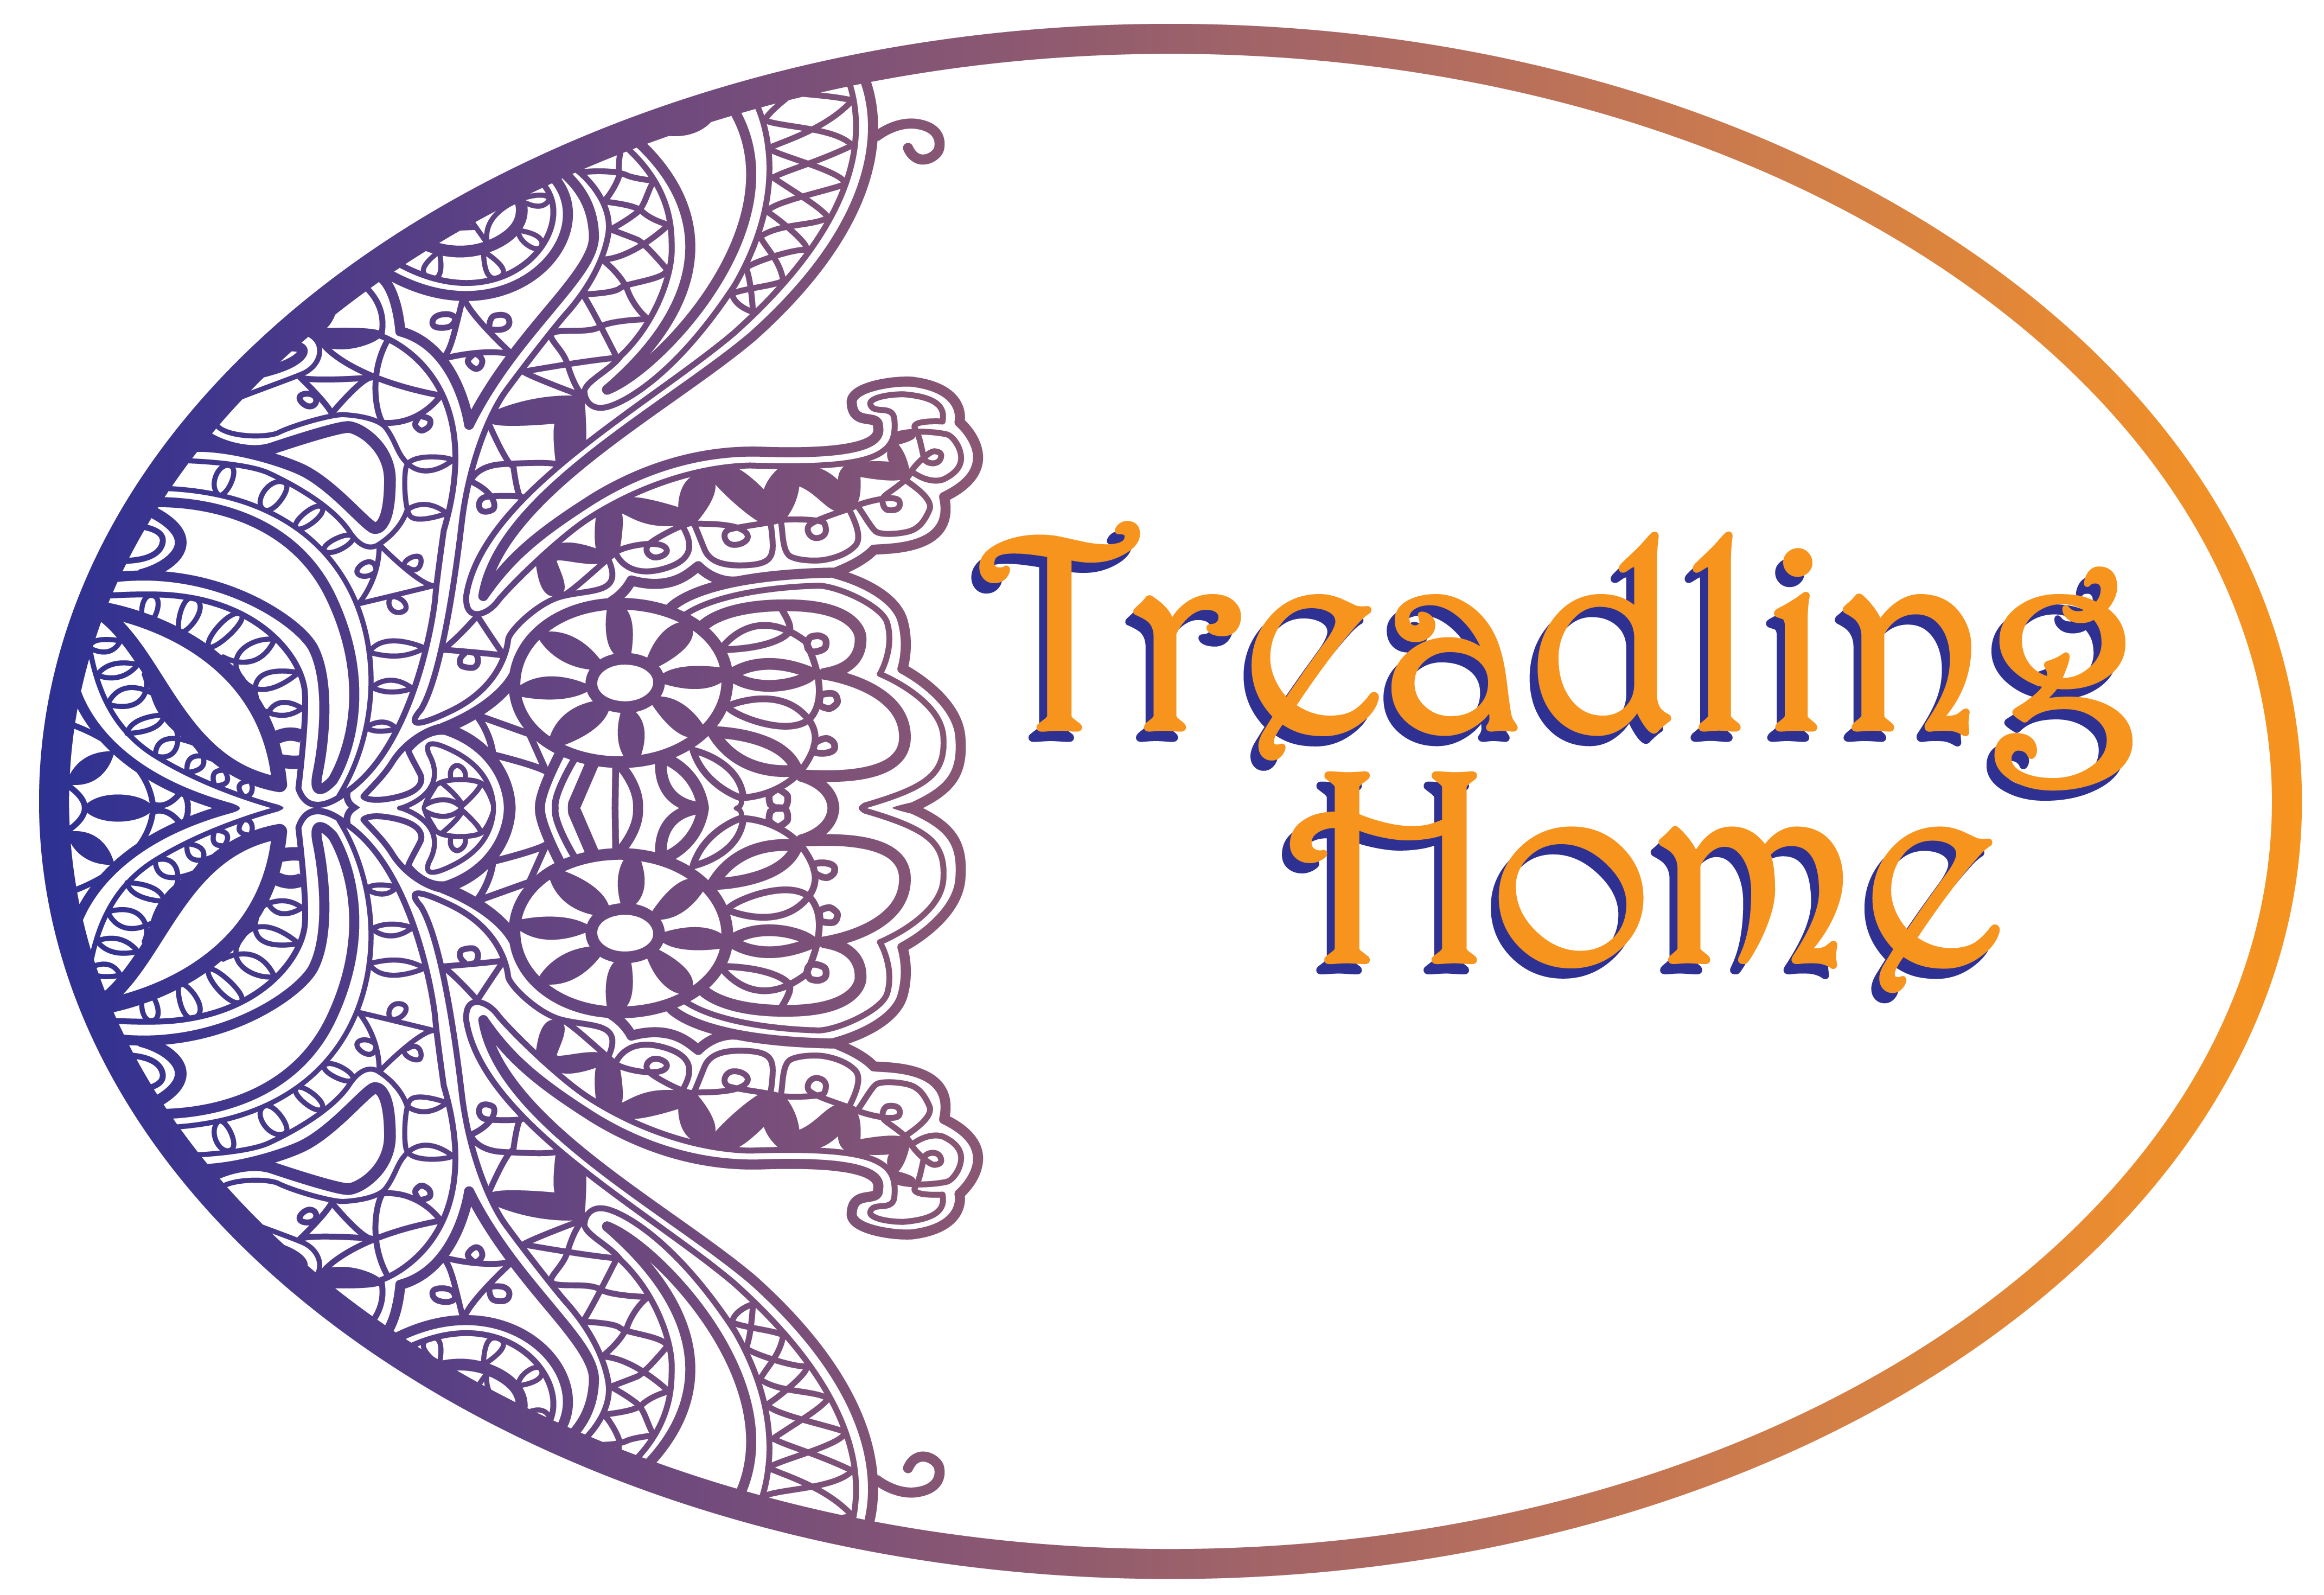 TreadlingHome